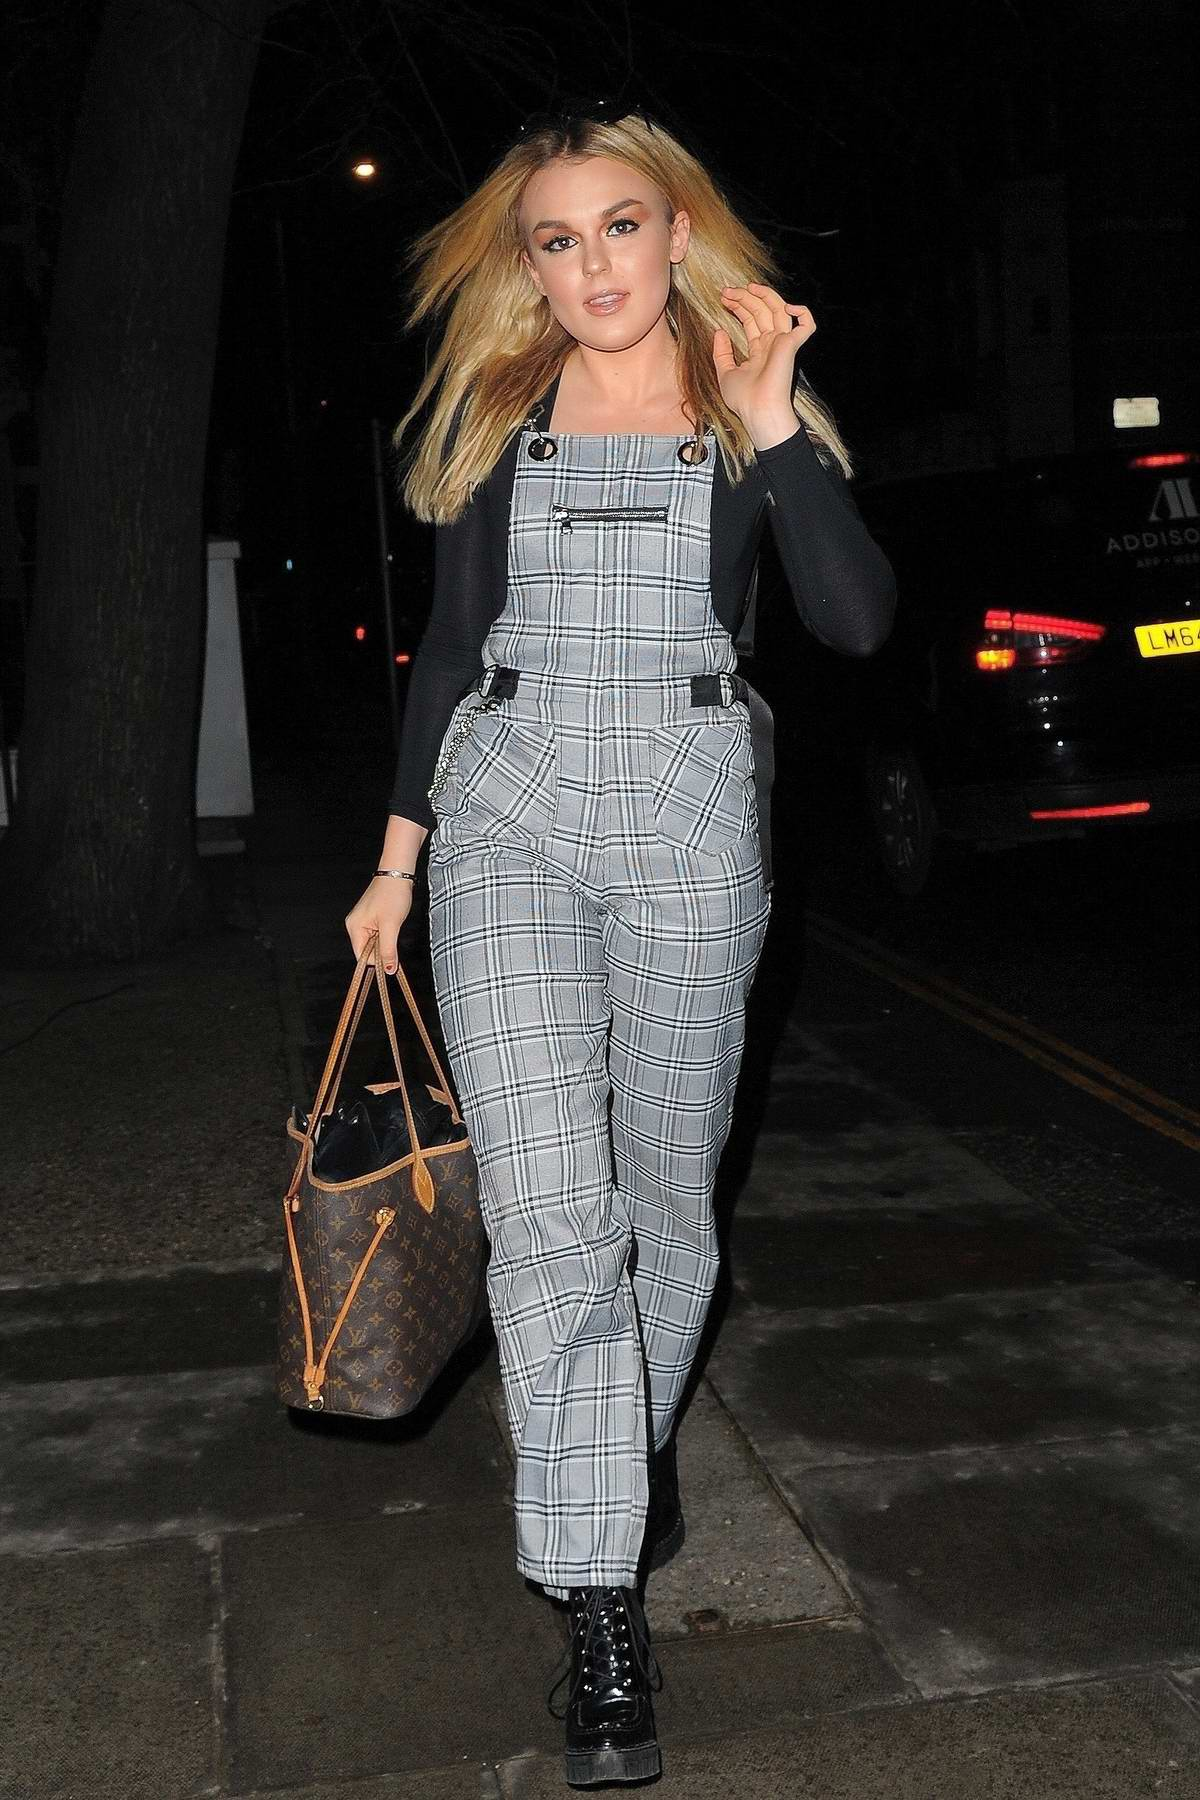 Tallia Storm wears a plaid dungarees over black top while attending the 'Feel Unique International Woman's Day Live Web Talk' in Islington, London